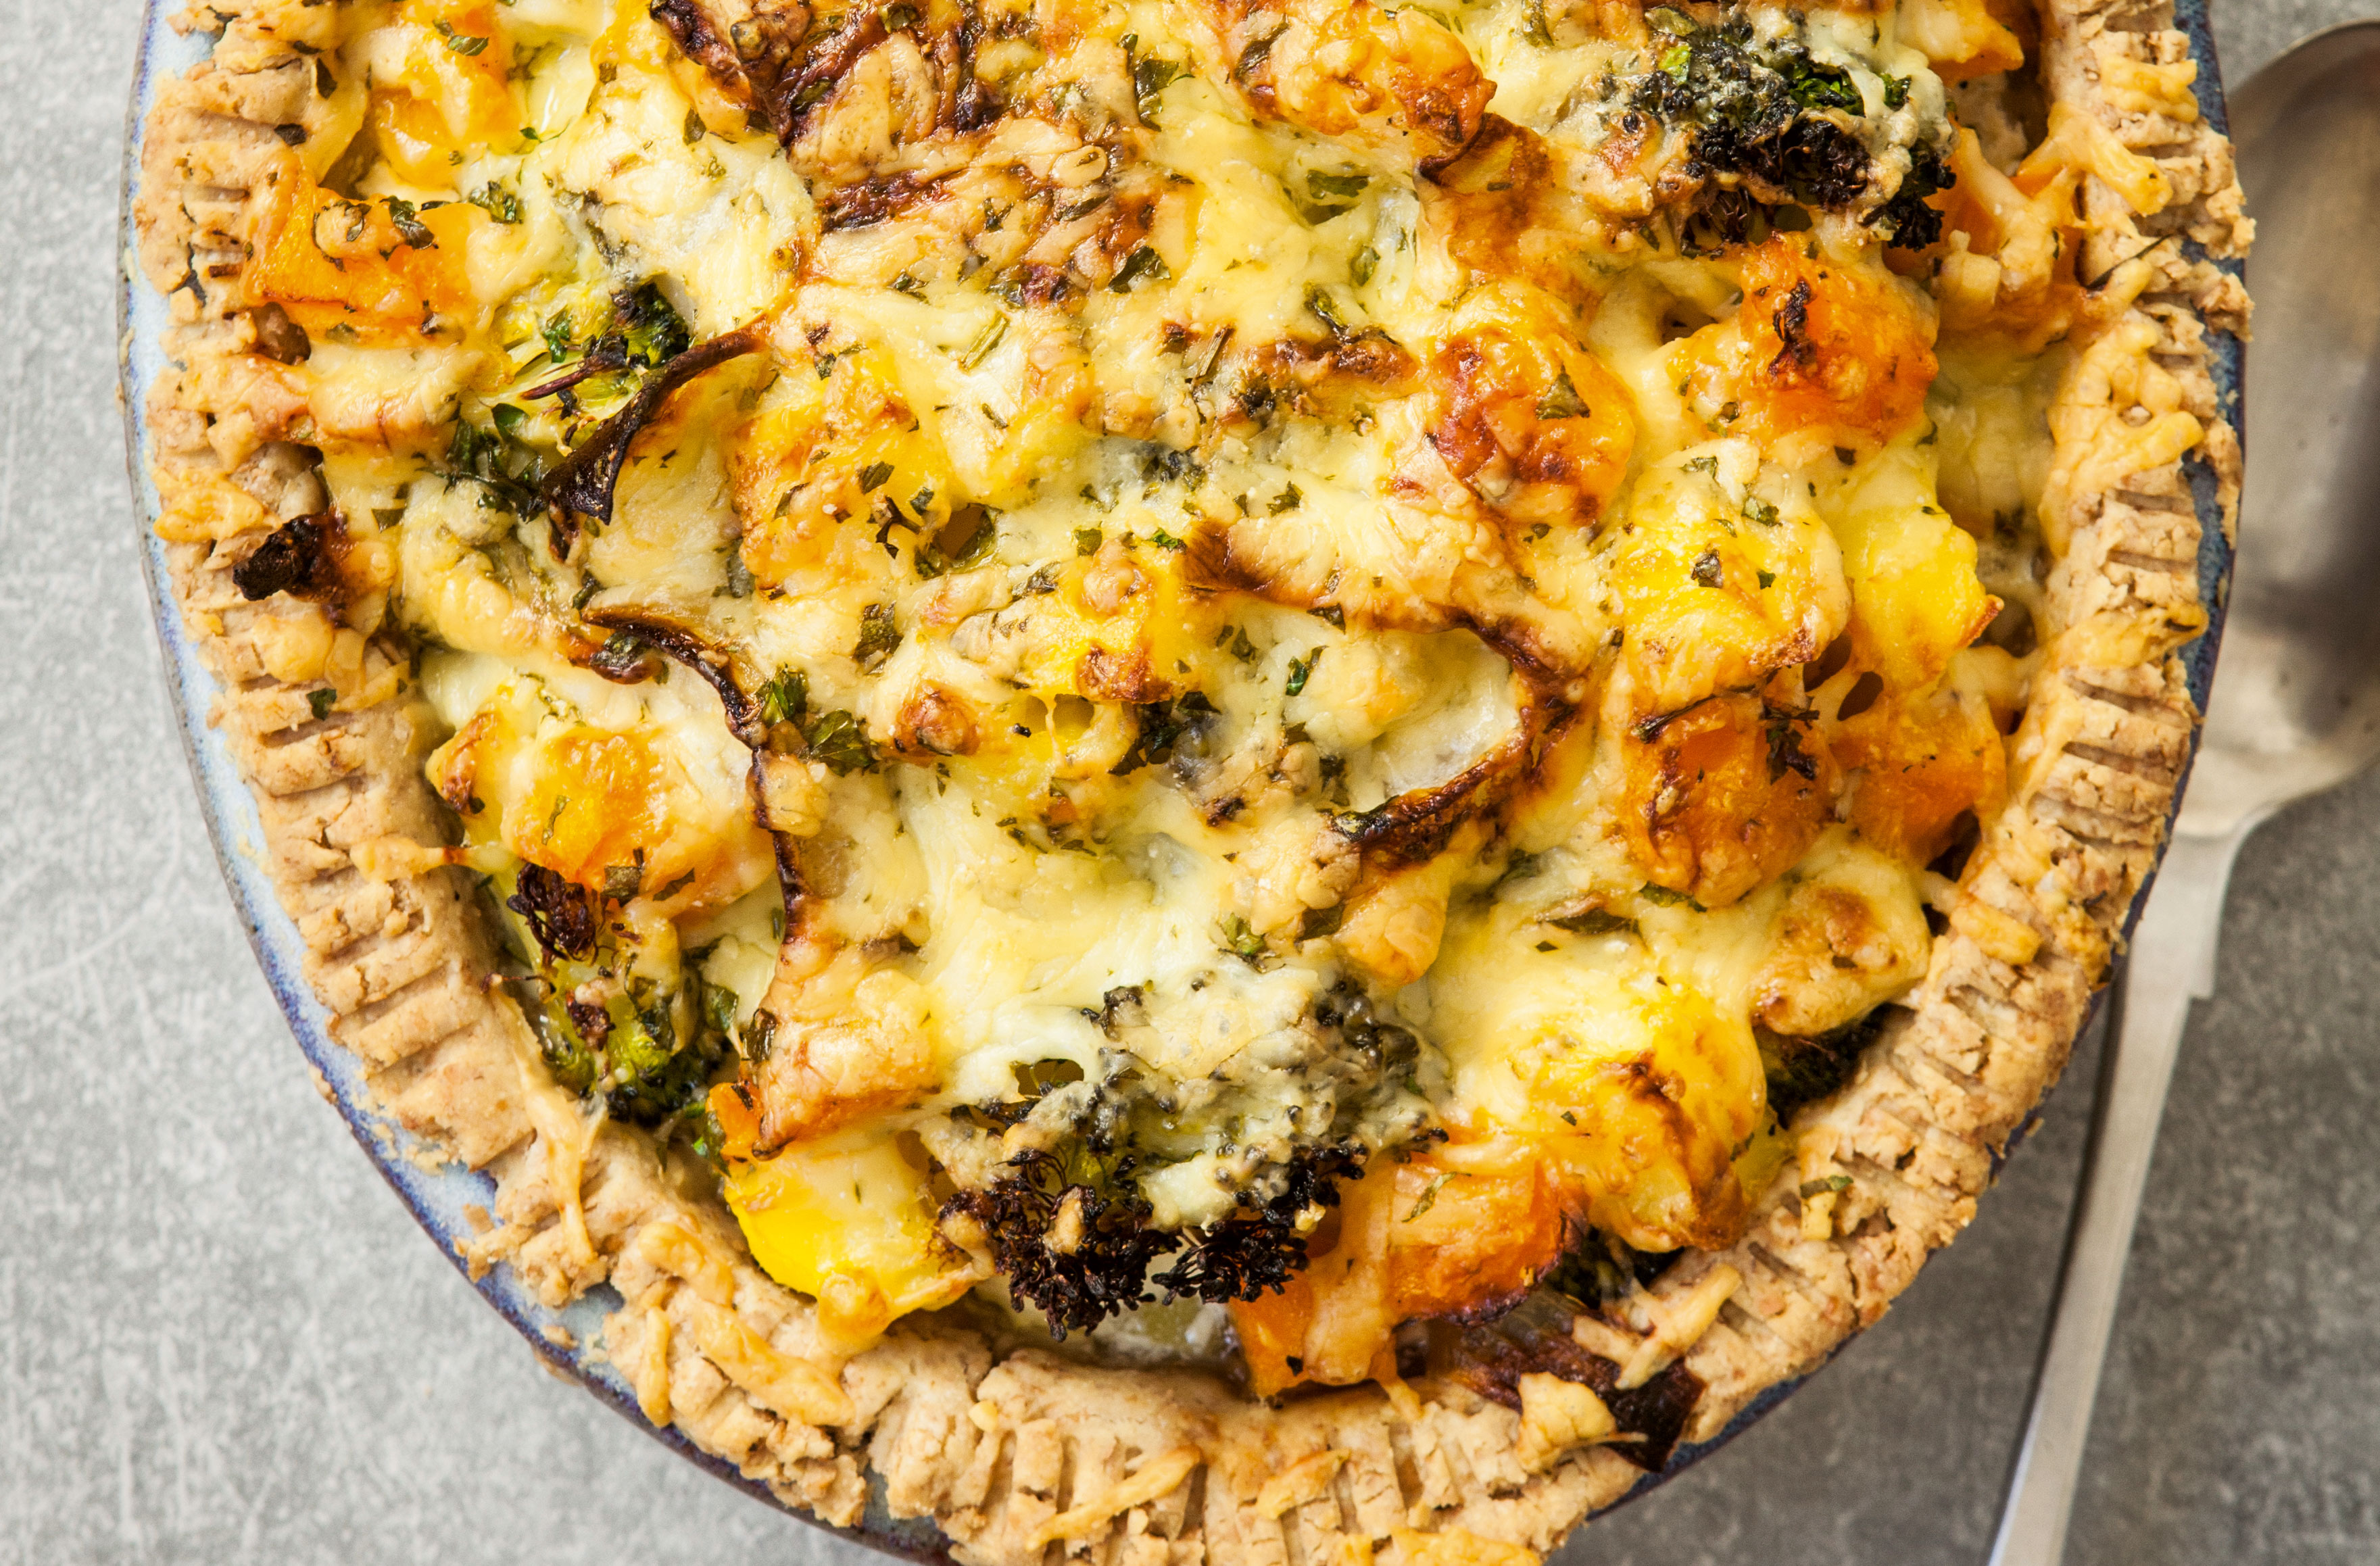 Vegetable Bake Recipes Healthy Gluten Free